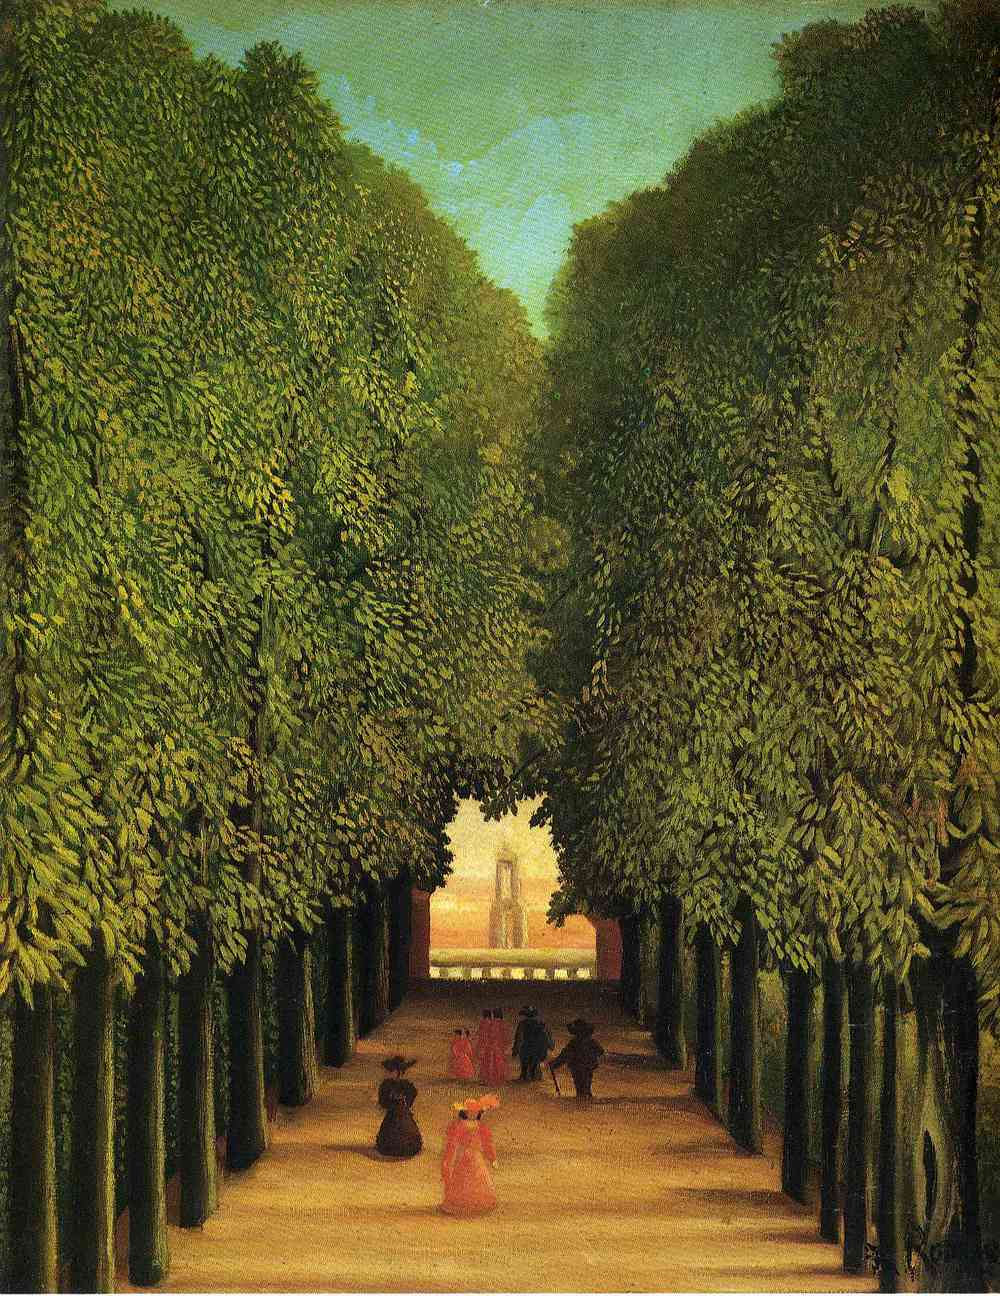 Henri Rousseau, late 19th century French painter and toll collector